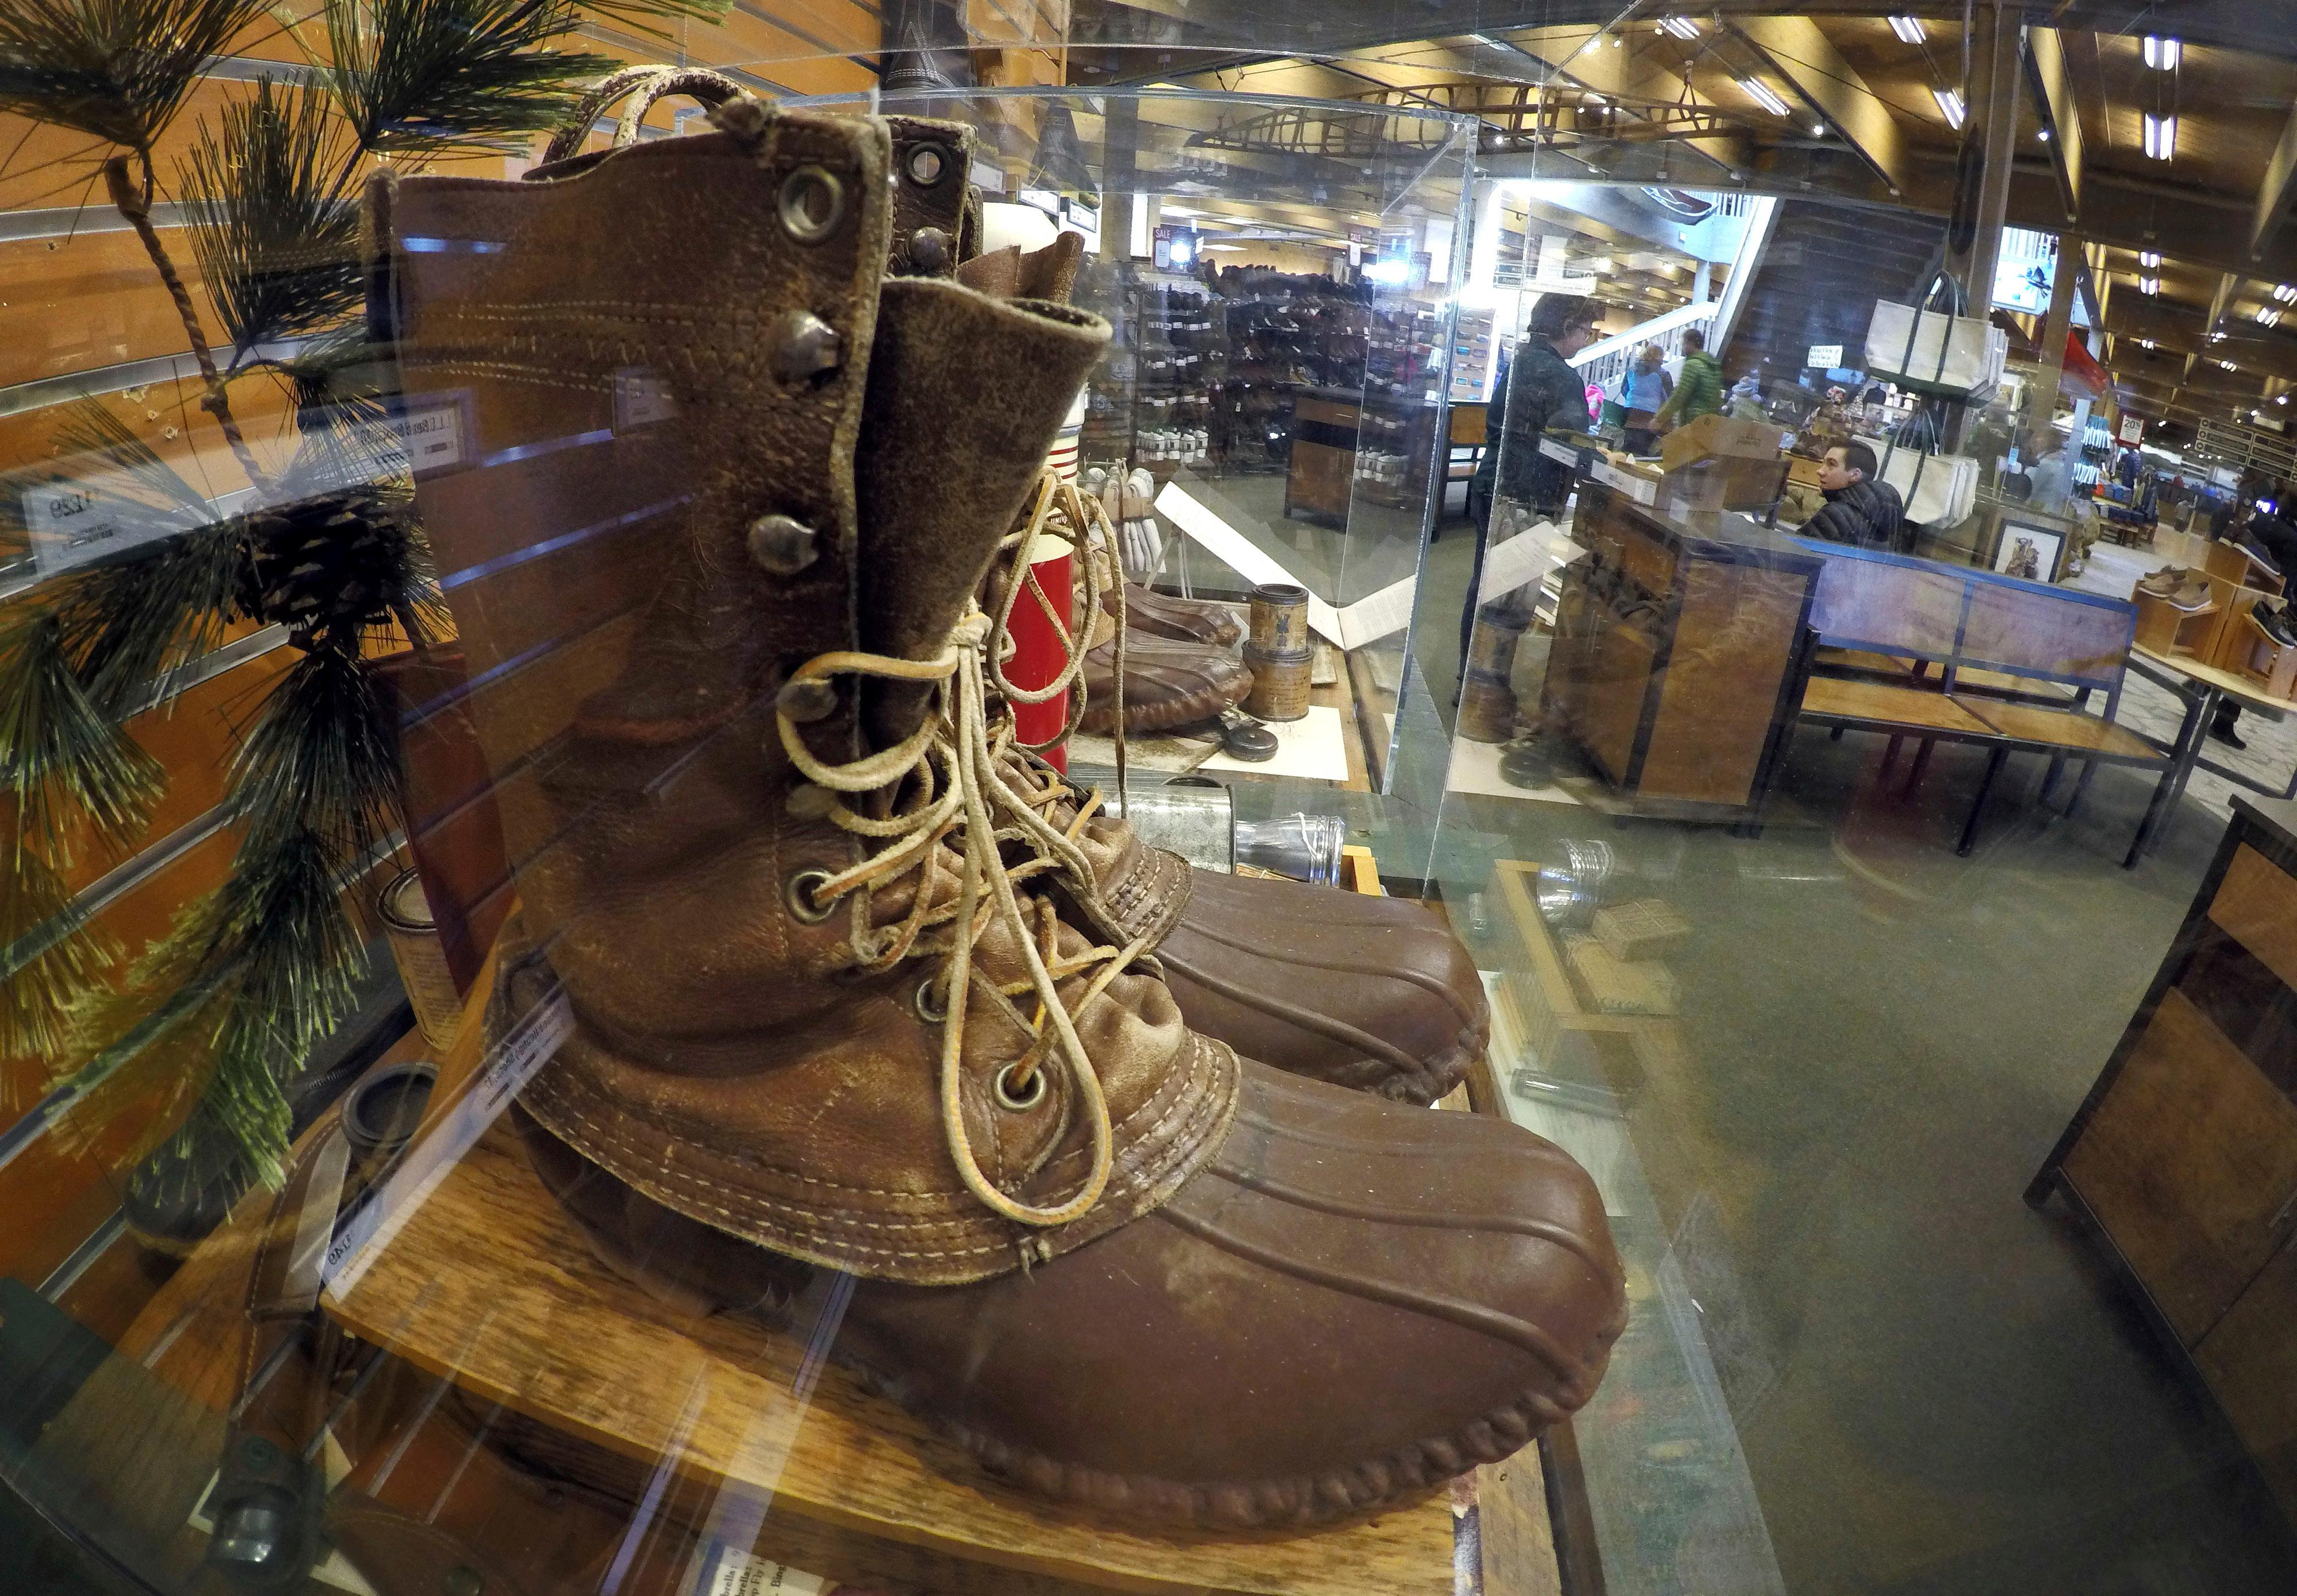 FILE - In this March 17, 2017 file photo, a early version of the Maine Hunting Shoe is displayed at the L.L. Bean flagship store in Freeport, Maine. L.L. Bean is tightening its generous return policy by imposing a one-year limit on most returns to reduce abuse and fraud. Executives say returns of severely worn items have doubled over five years. Under the new policy announced Friday, Feb. 9, 2018, the company will accept returns for one year with a proof of purchase and will continue to replace products for manufacturing defects beyond that. (AP Photo/Robert F. Bukaty, File)